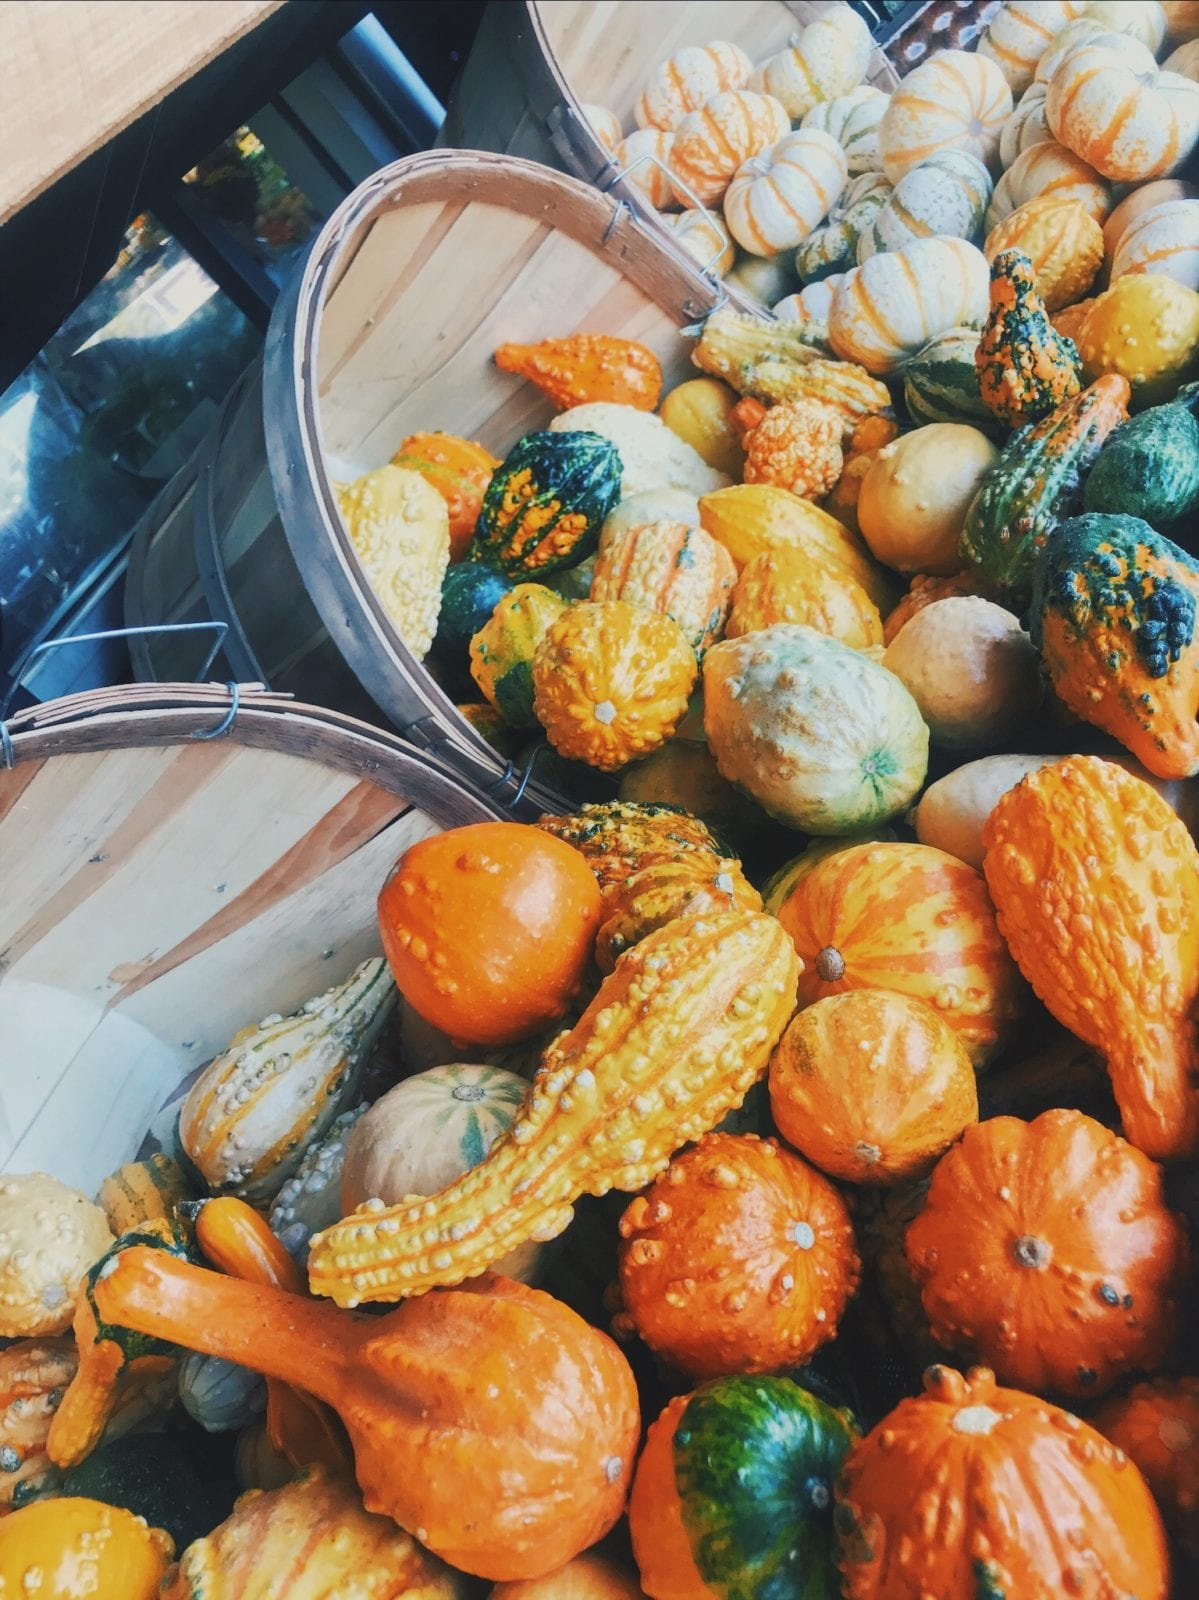 Pumpkins are pouring out of barrels, and effortlessly creating beautiful fall decor.